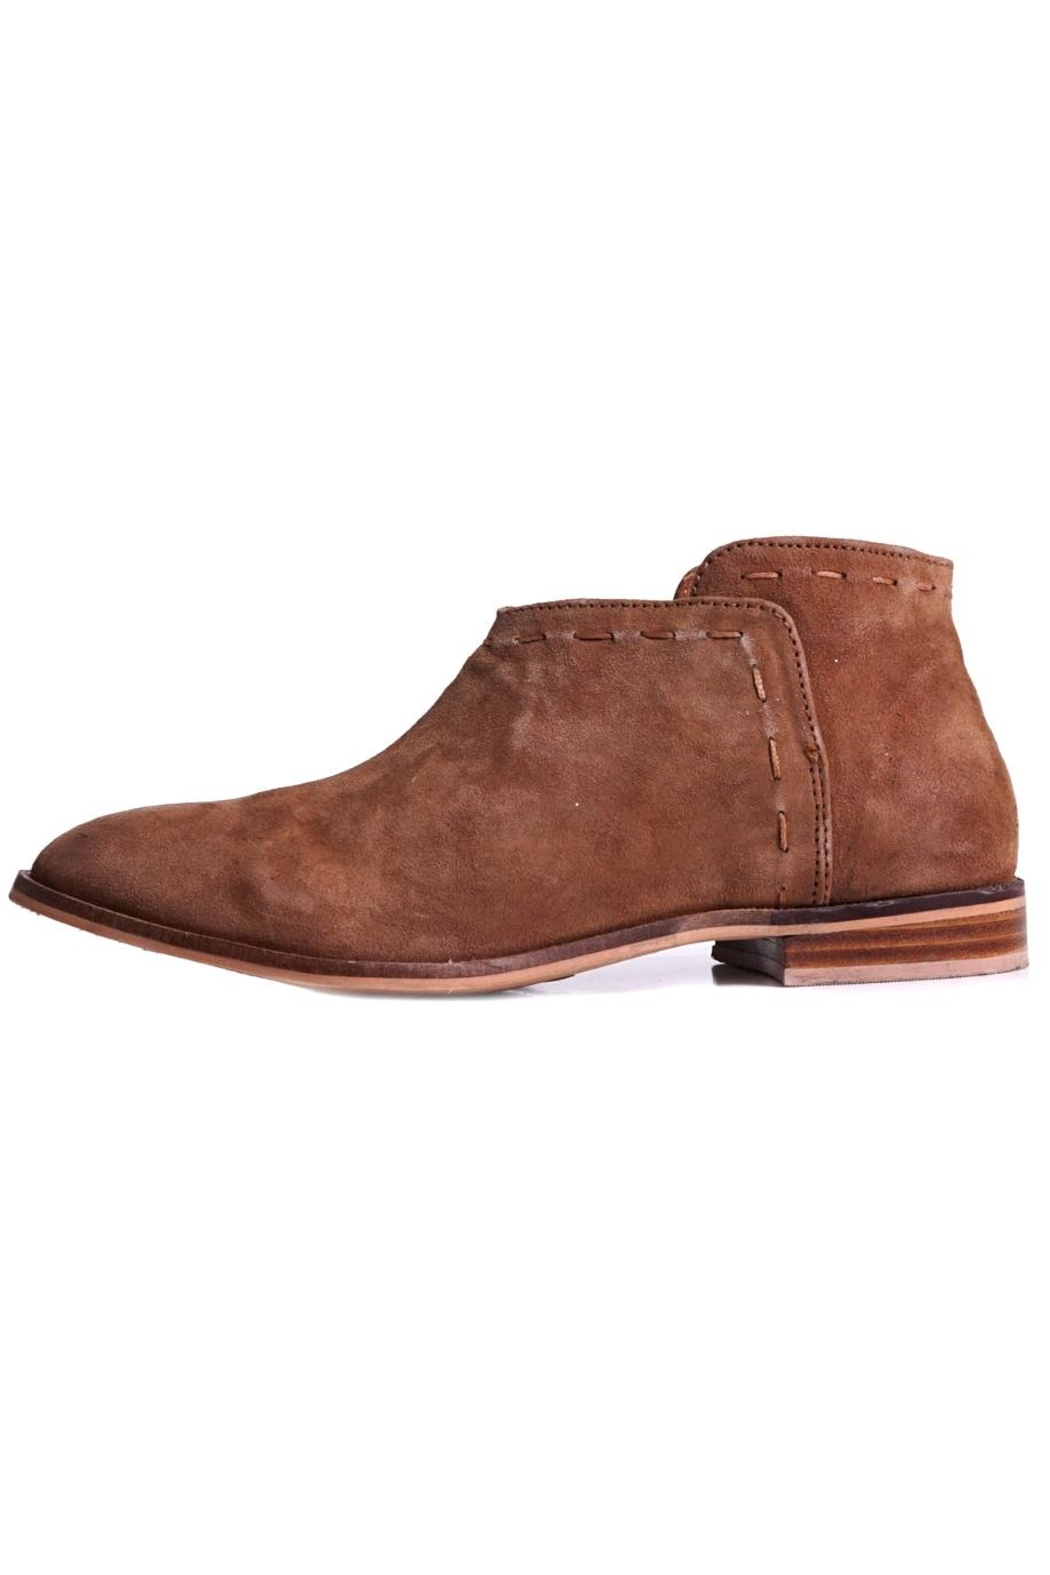 Suede Odell Bootie